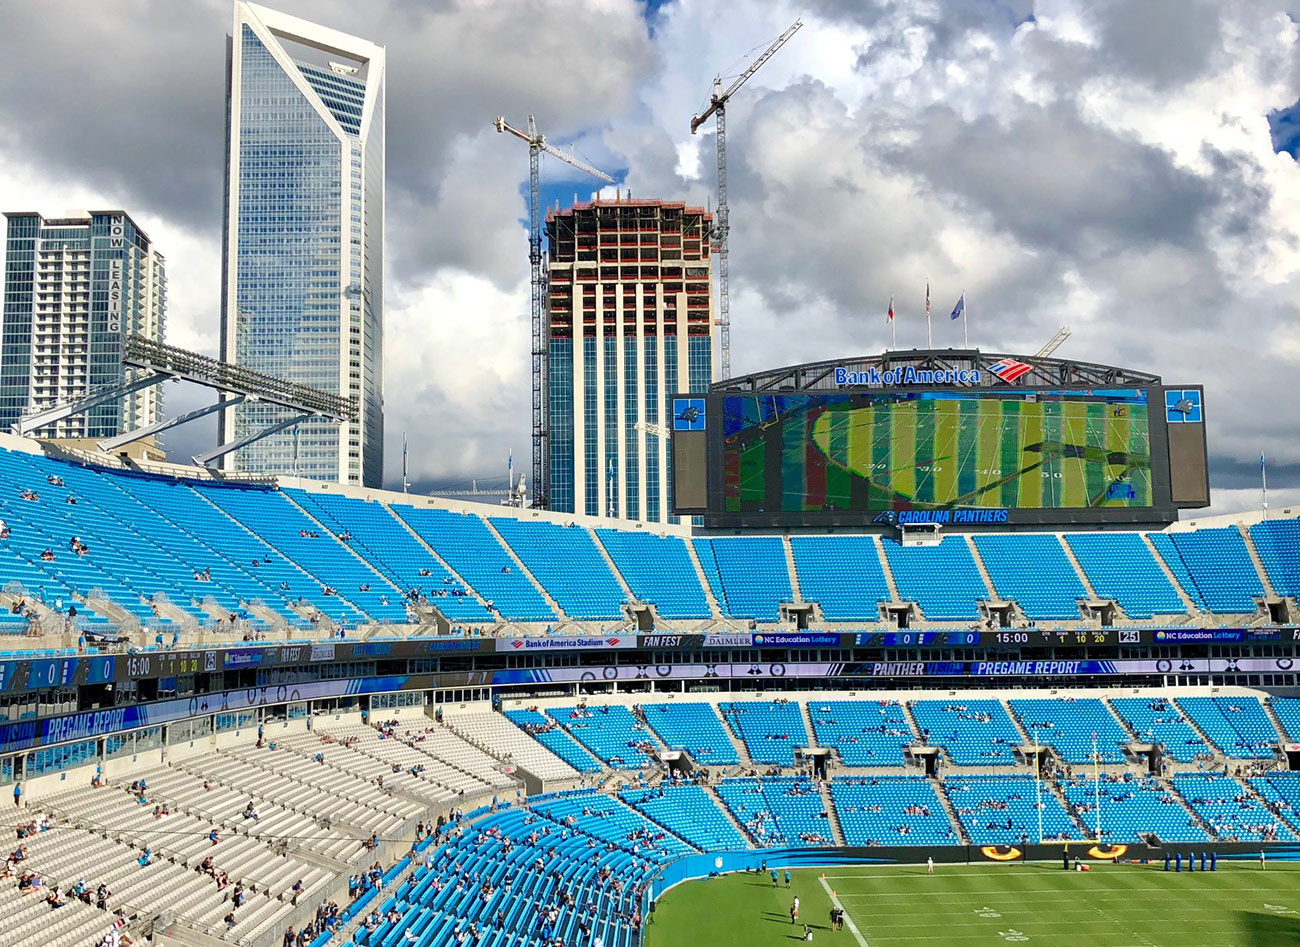 10 things this Panthers fan wishes you'd stop doing at Bank of